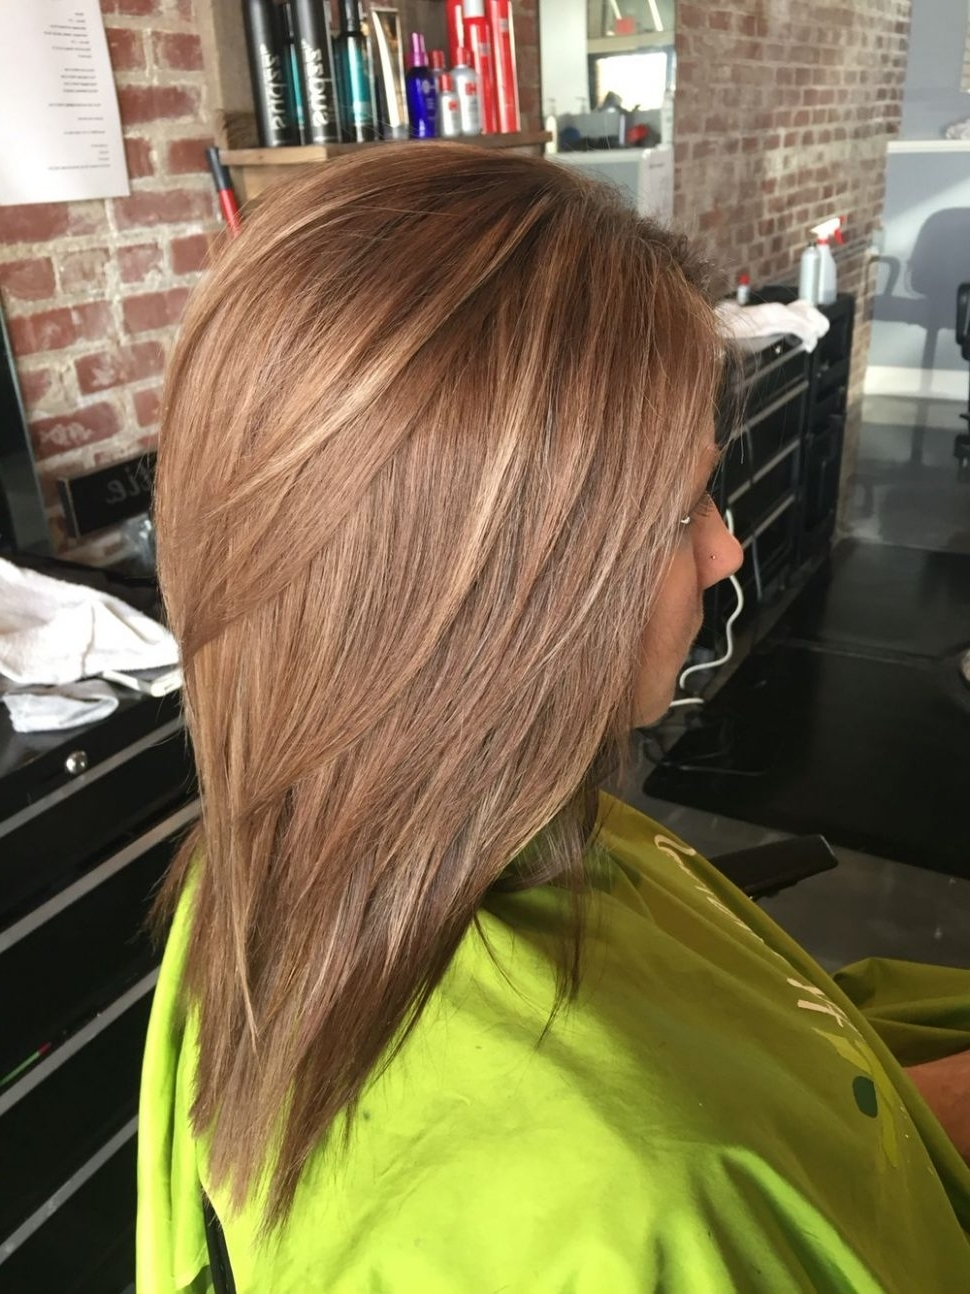 Hair Color : Brown Hair With Blonde Highlights Wig Light Bob Dark With 2018 Light Brown Hairstyles With Blonde Highlights (View 11 of 20)